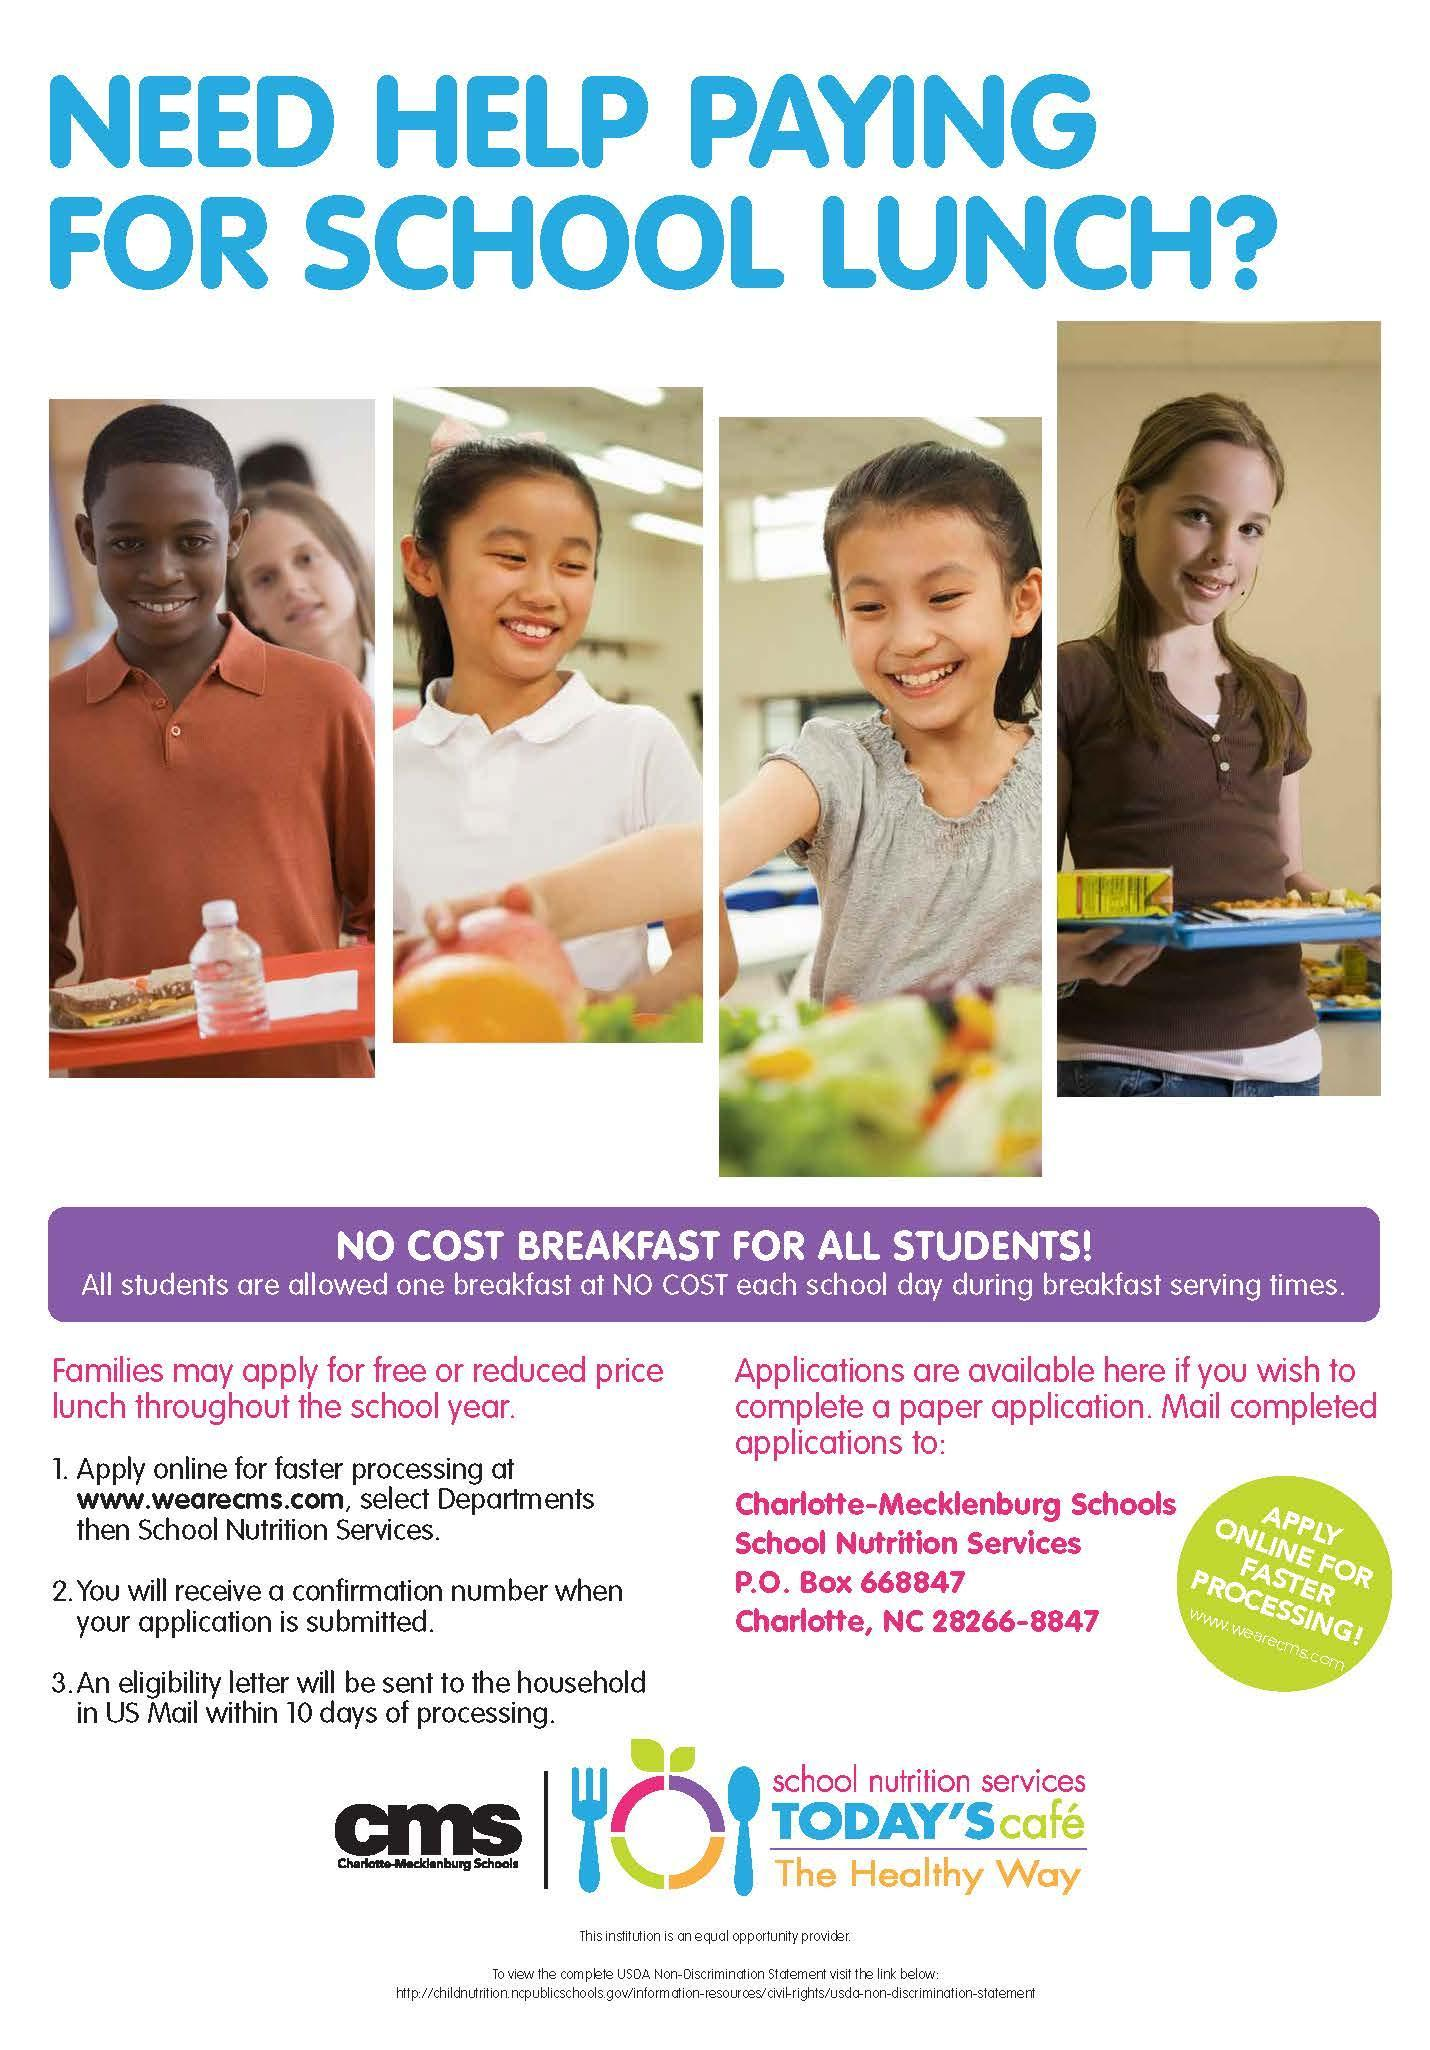 Need Help Paying for School Lunch? Poster